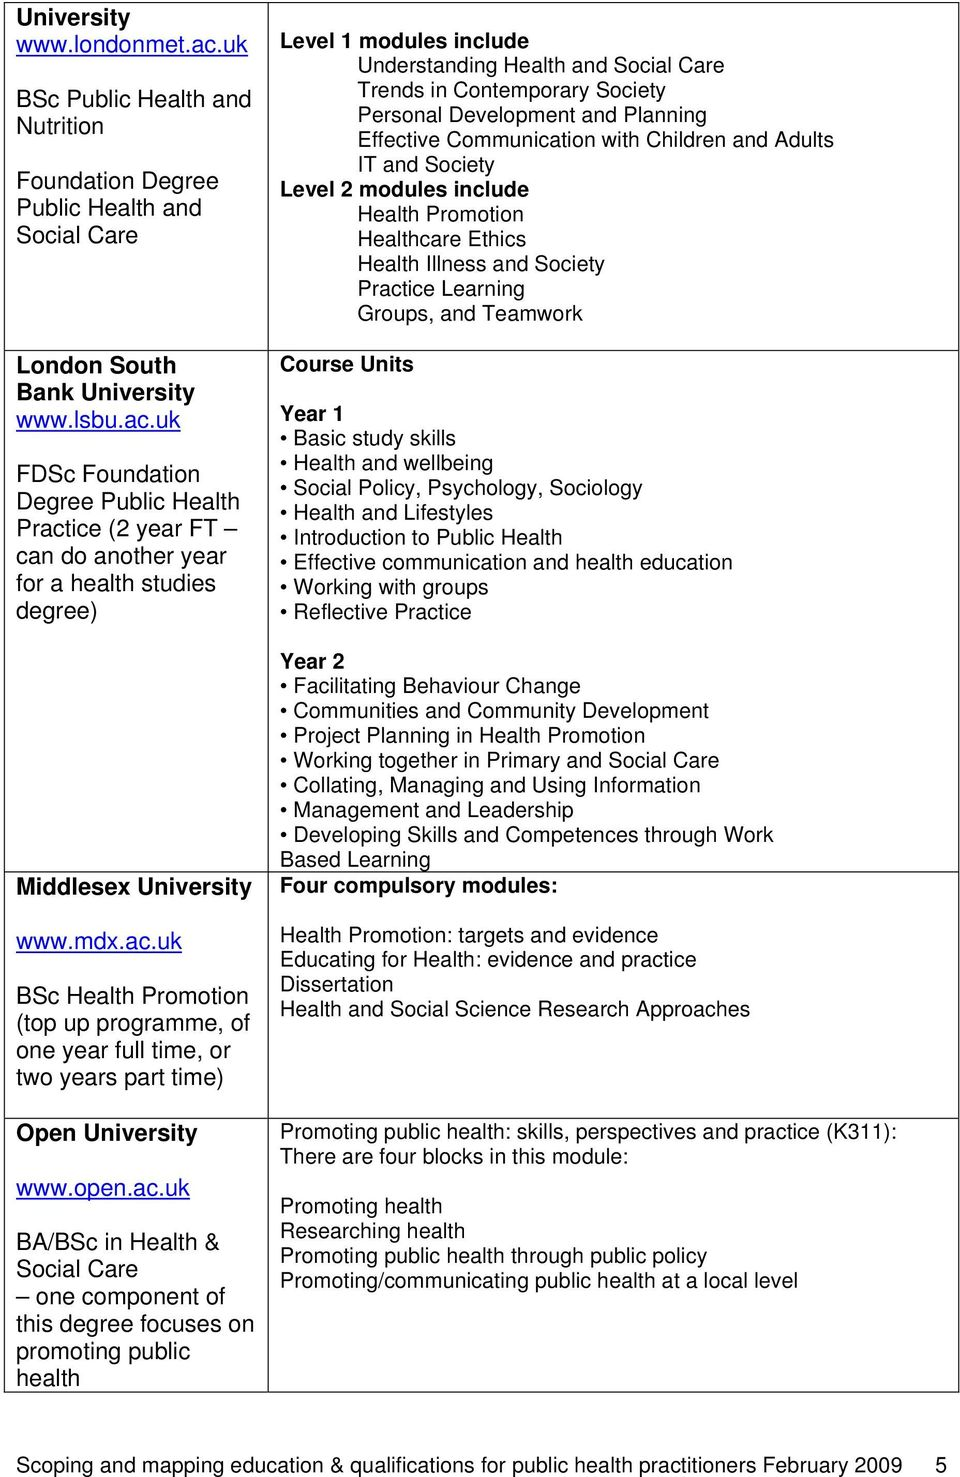 uk BSc Health Promotion (top up programme, of one year full time, or two years part time) Open www.open.ac.